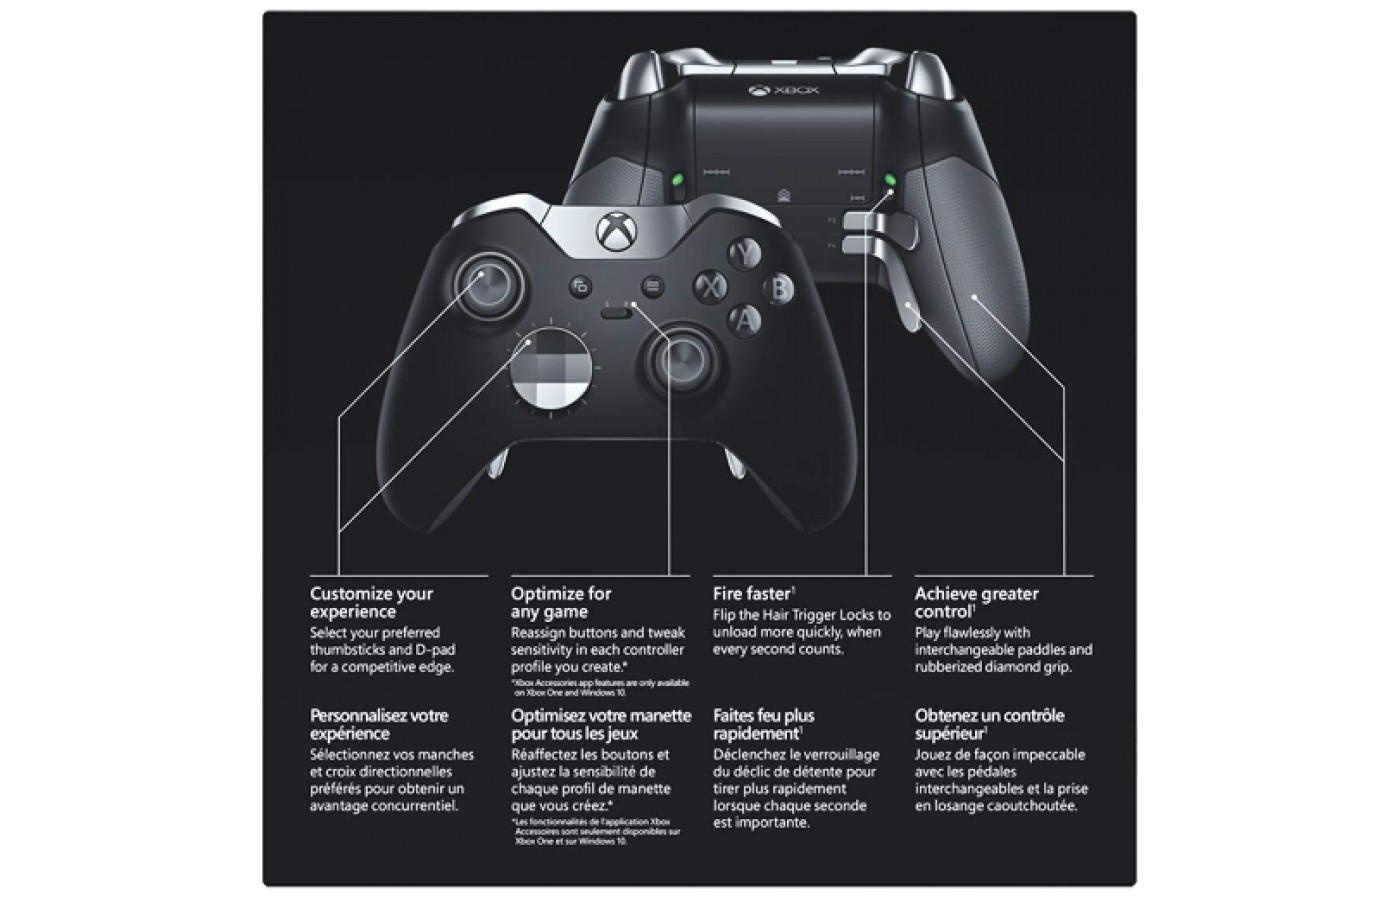 Windows 10 doesnt detect xbox one controller | Xbox One Controller